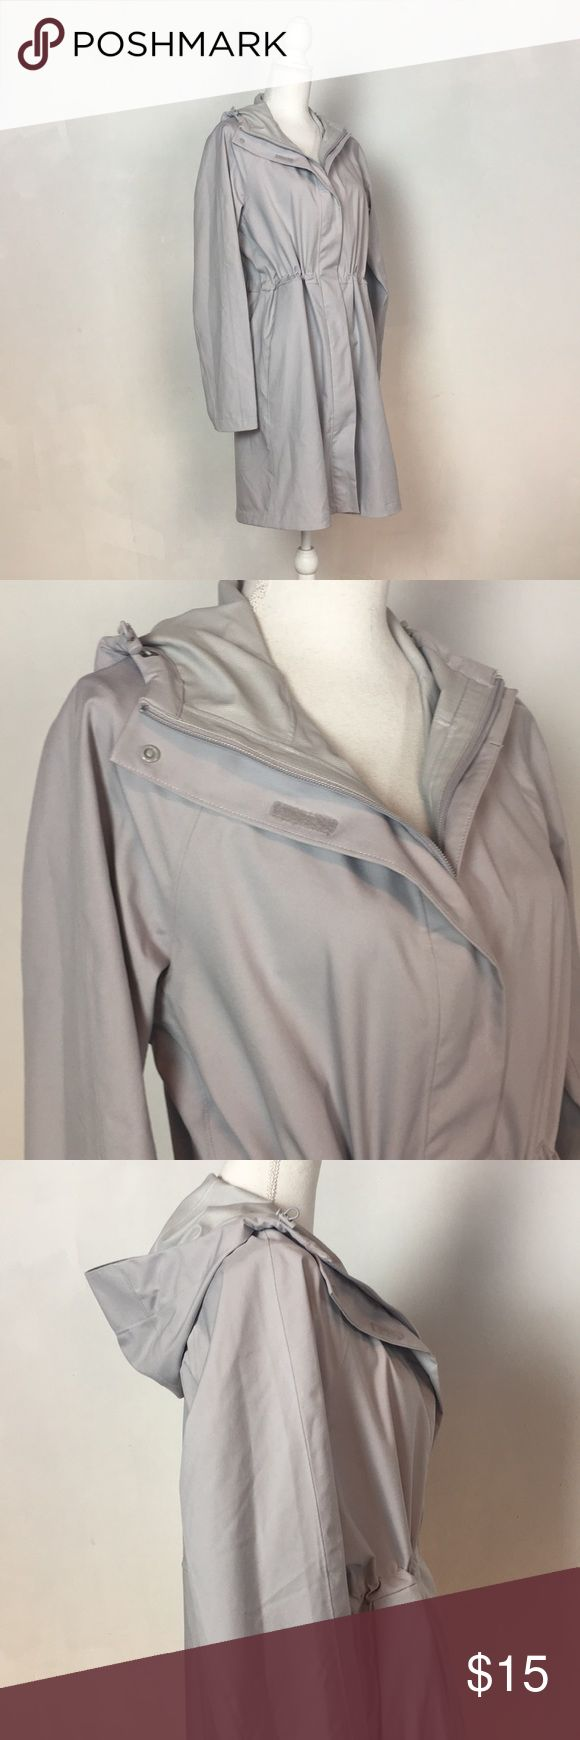 Uniqlo grey rain slicker Lightweight and like guy grey Uniqlo rain slicker. Great for travel! Folds easily to stash in your backpack or purse. Full zipper and extra Velcro closures, zippered side pockets to keep belongings safe on the go. Uniqlo Jackets & Coats Utility Jackets